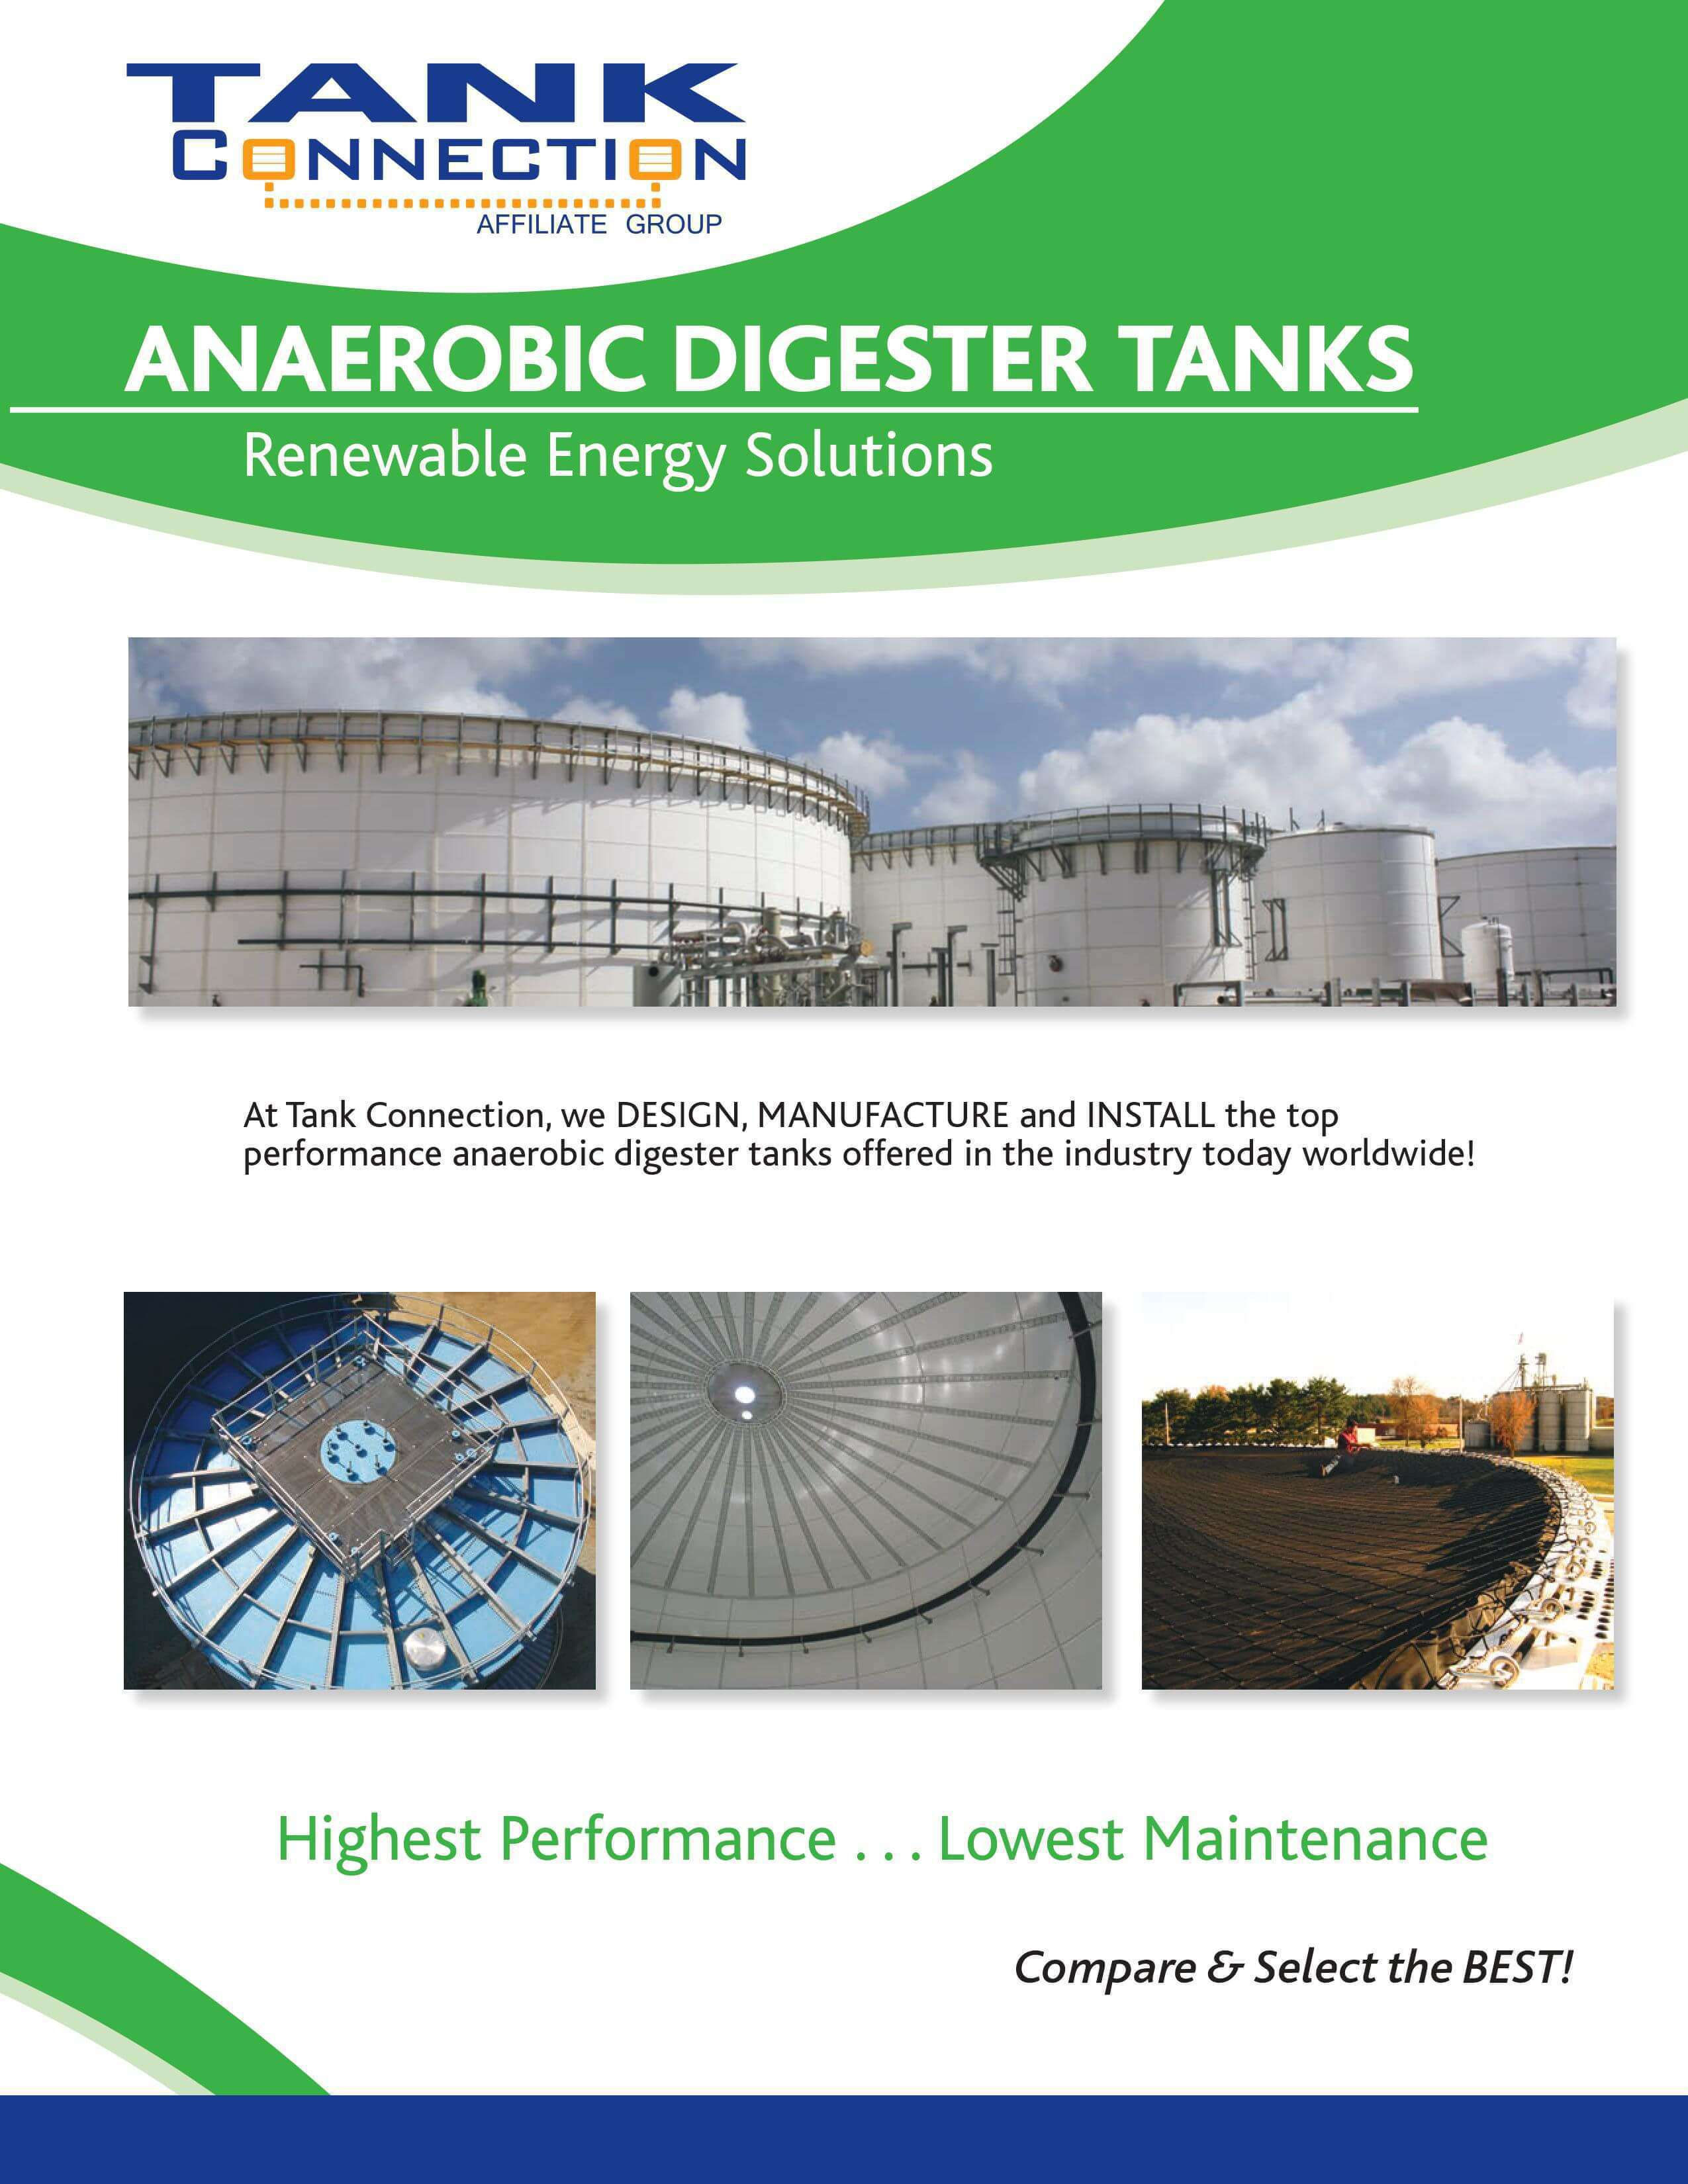 Anaerobic Digester Tanks